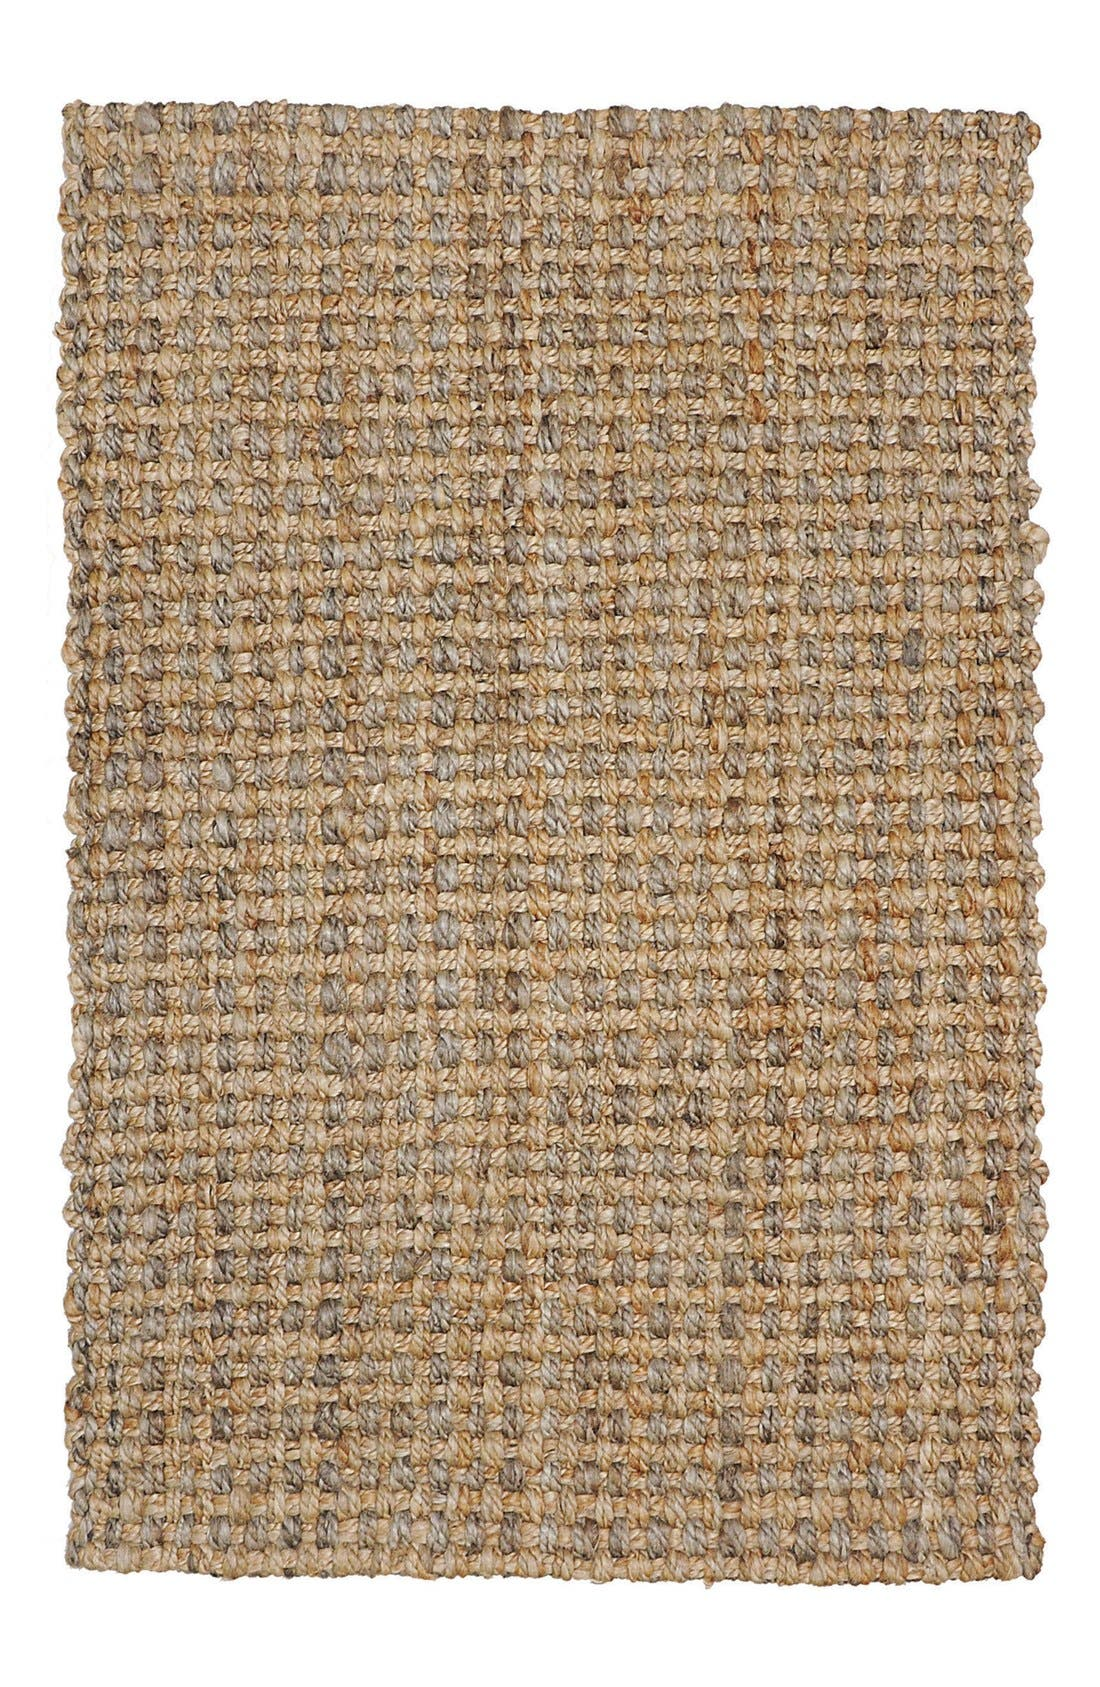 Panama Handwoven Rug,                         Main,                         color, 250